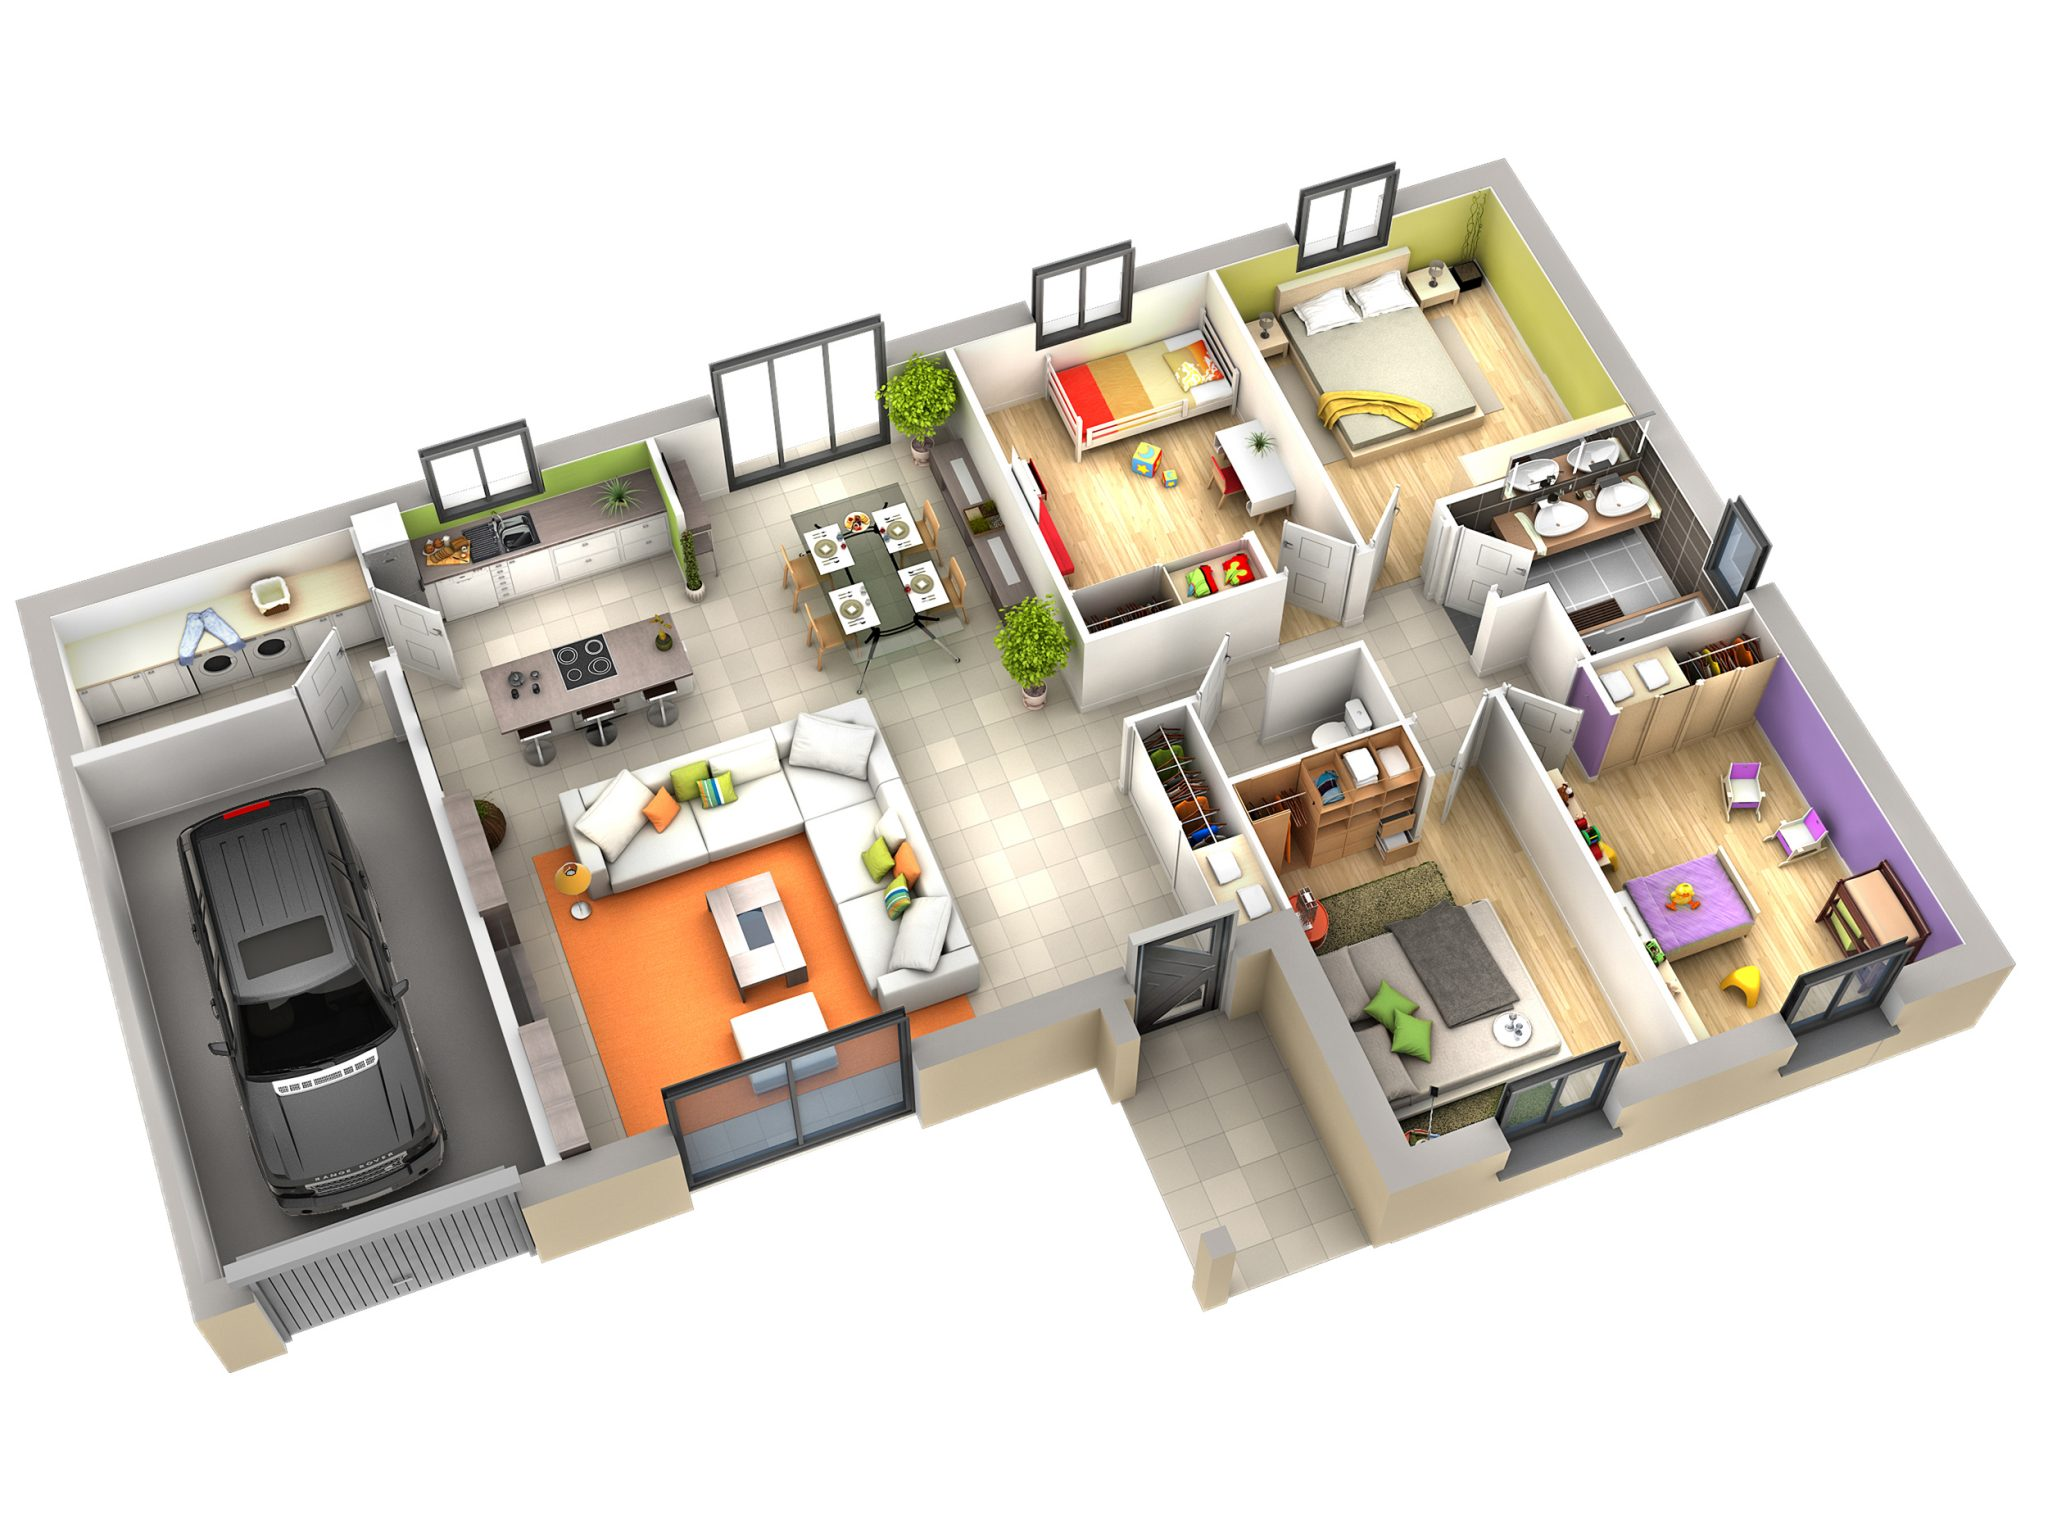 Plan interieur de maison l 39 impression 3d - Plan interieur maison ...